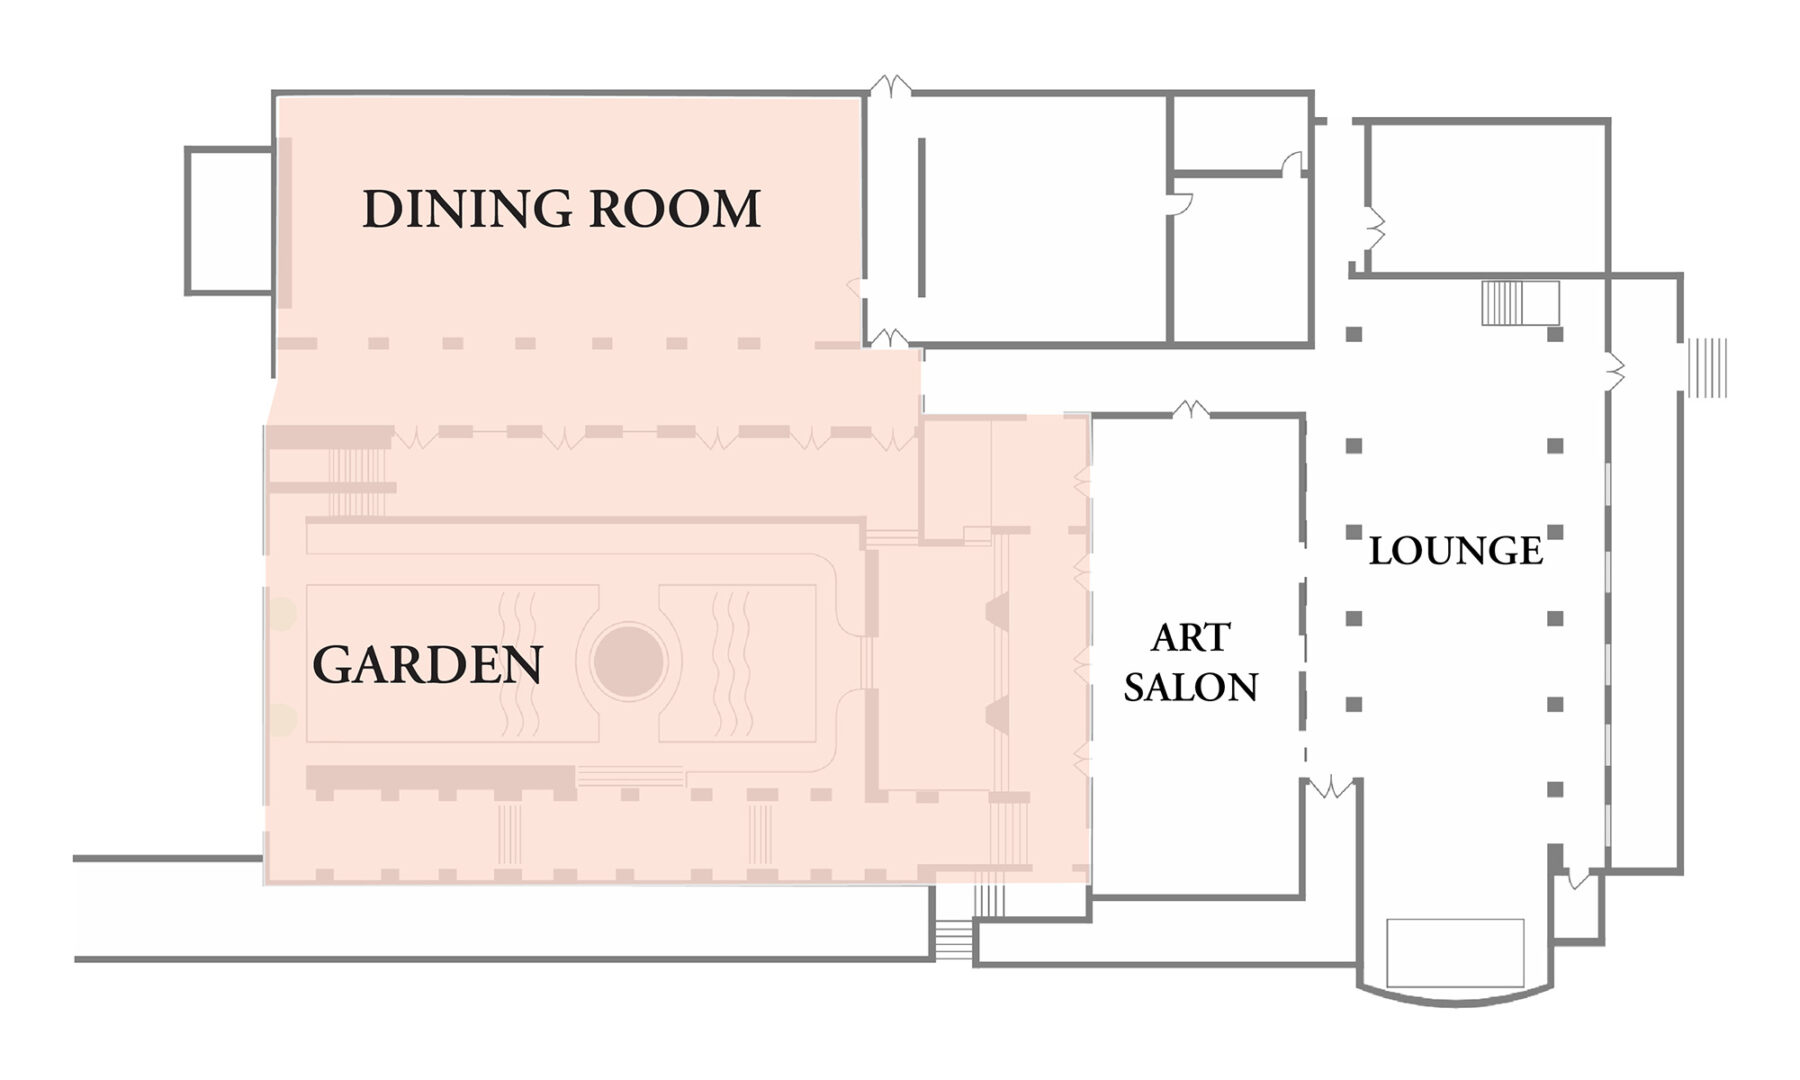 Ebell Club Floor Plan. Dining Room and Garden